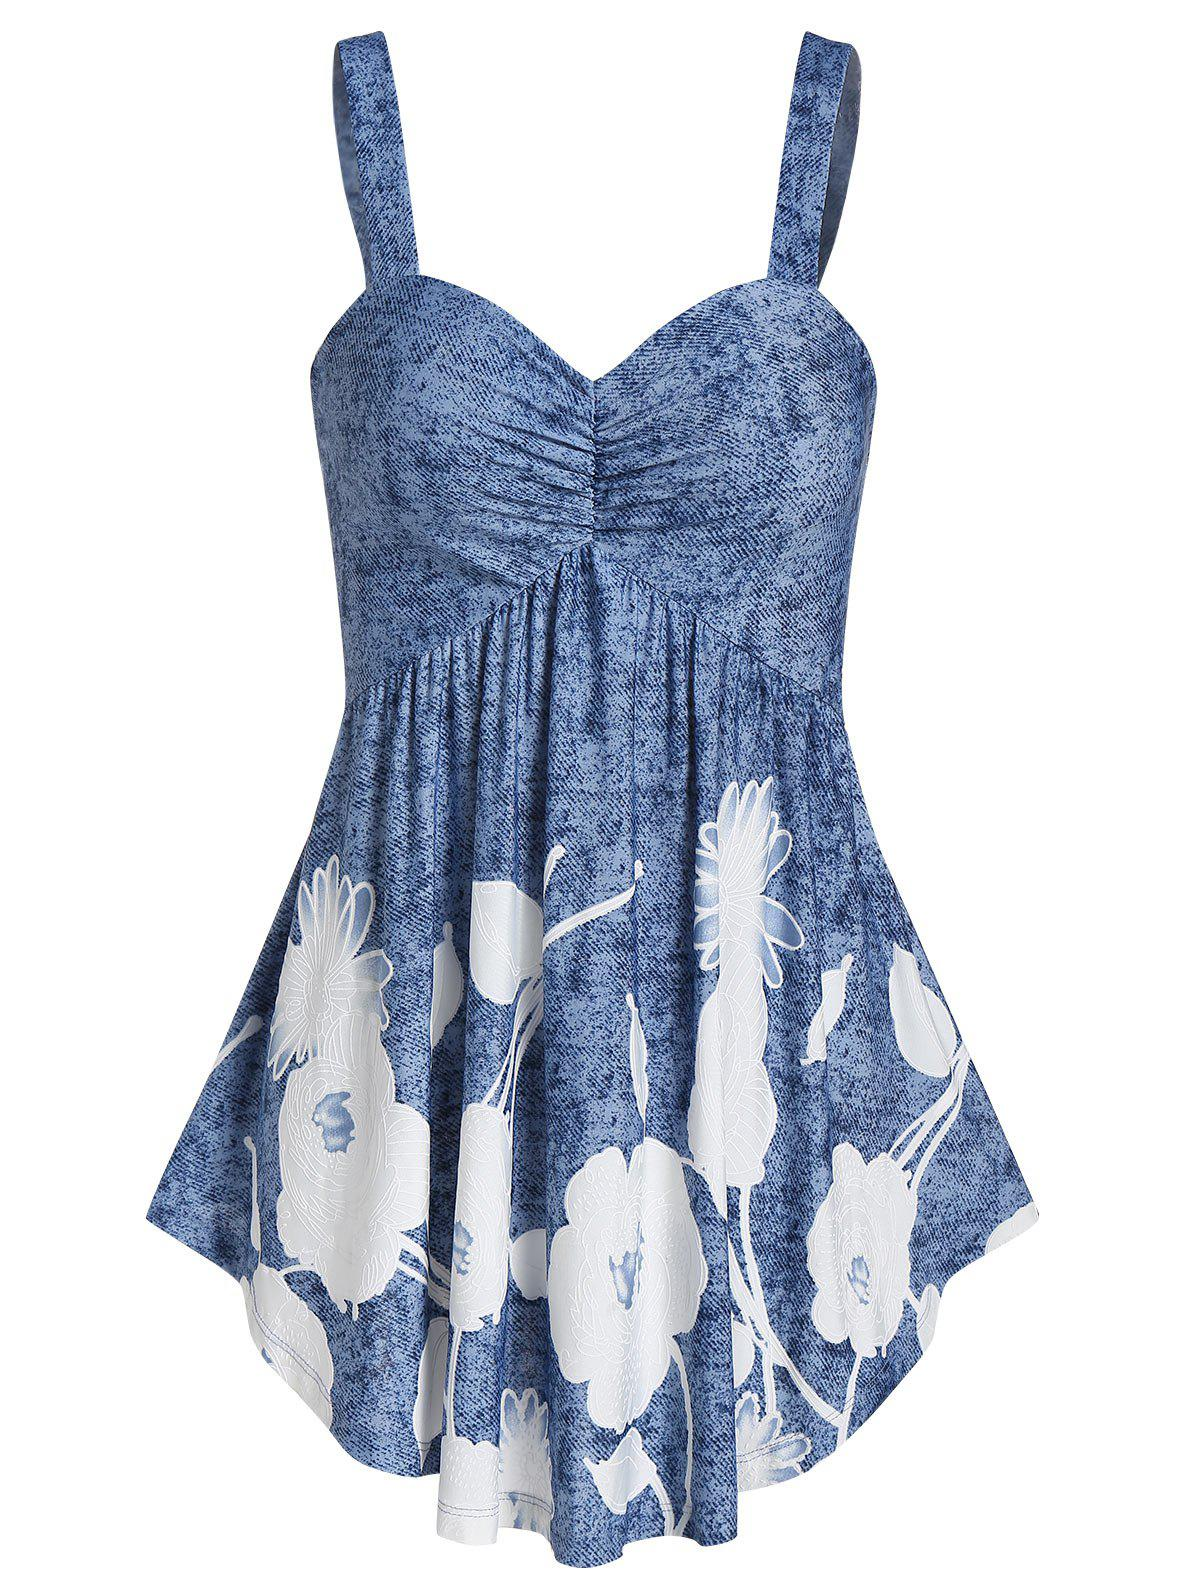 Unique Floral Print Sweetheart Collar Flare Tank Top